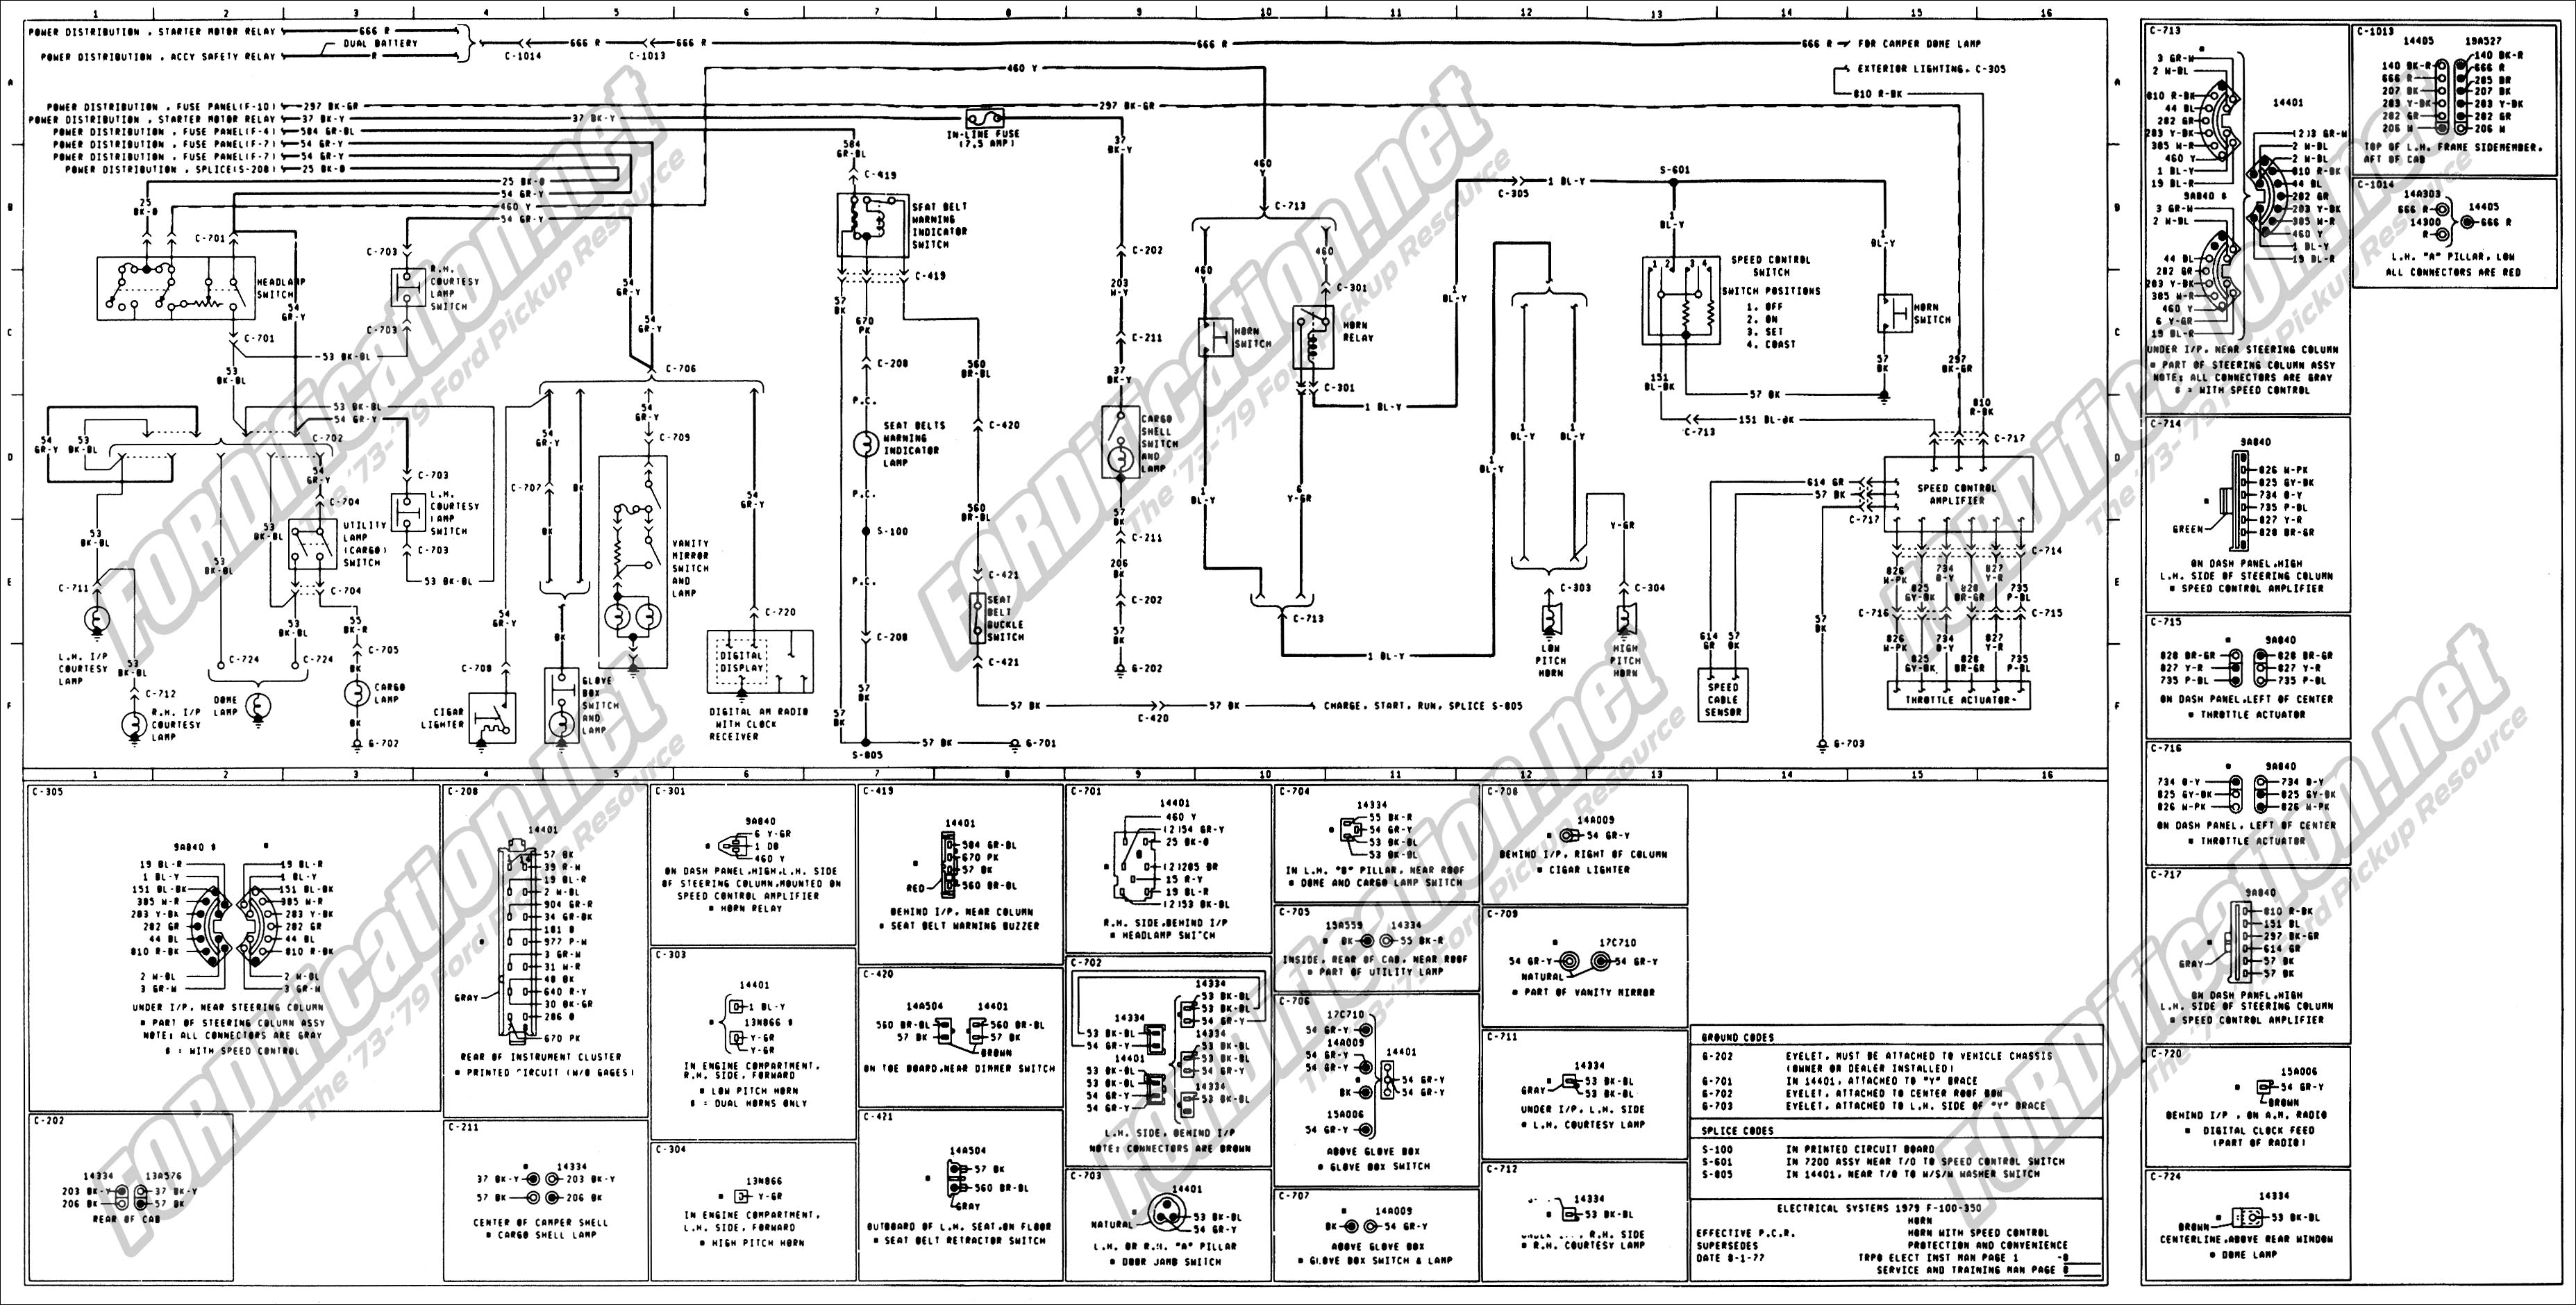 78 f100 wiring diagram detailed schematics diagram rh jppastryarts com 2013 Ford F350 Wiring Diagram 2004 F250 Wiring Diagram